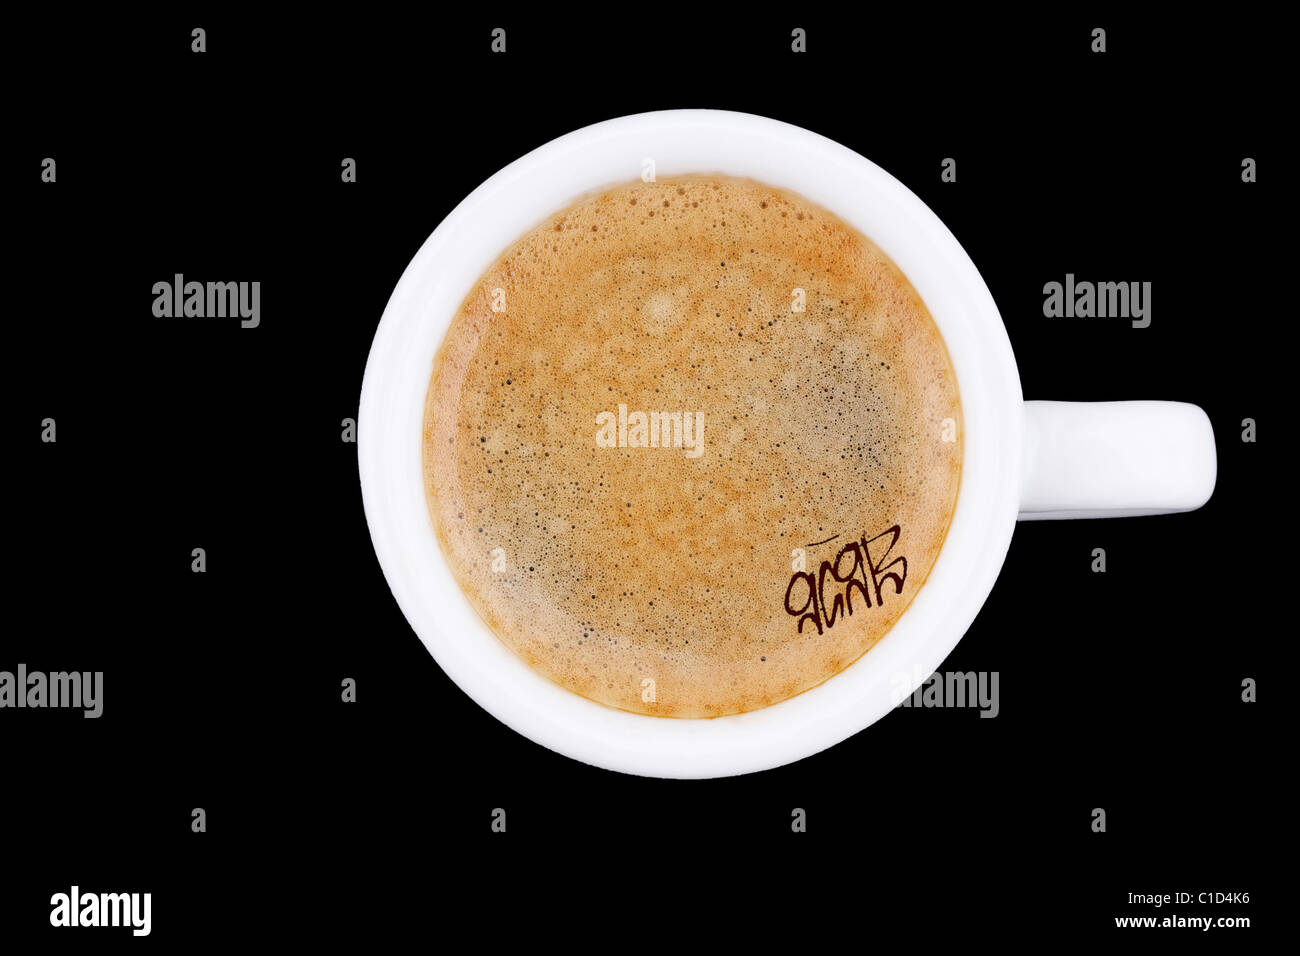 digital enhancement - clip image - graffito nickname tag 9G9B on cafe crema coffee foam - symbolism for street art - Stock Image